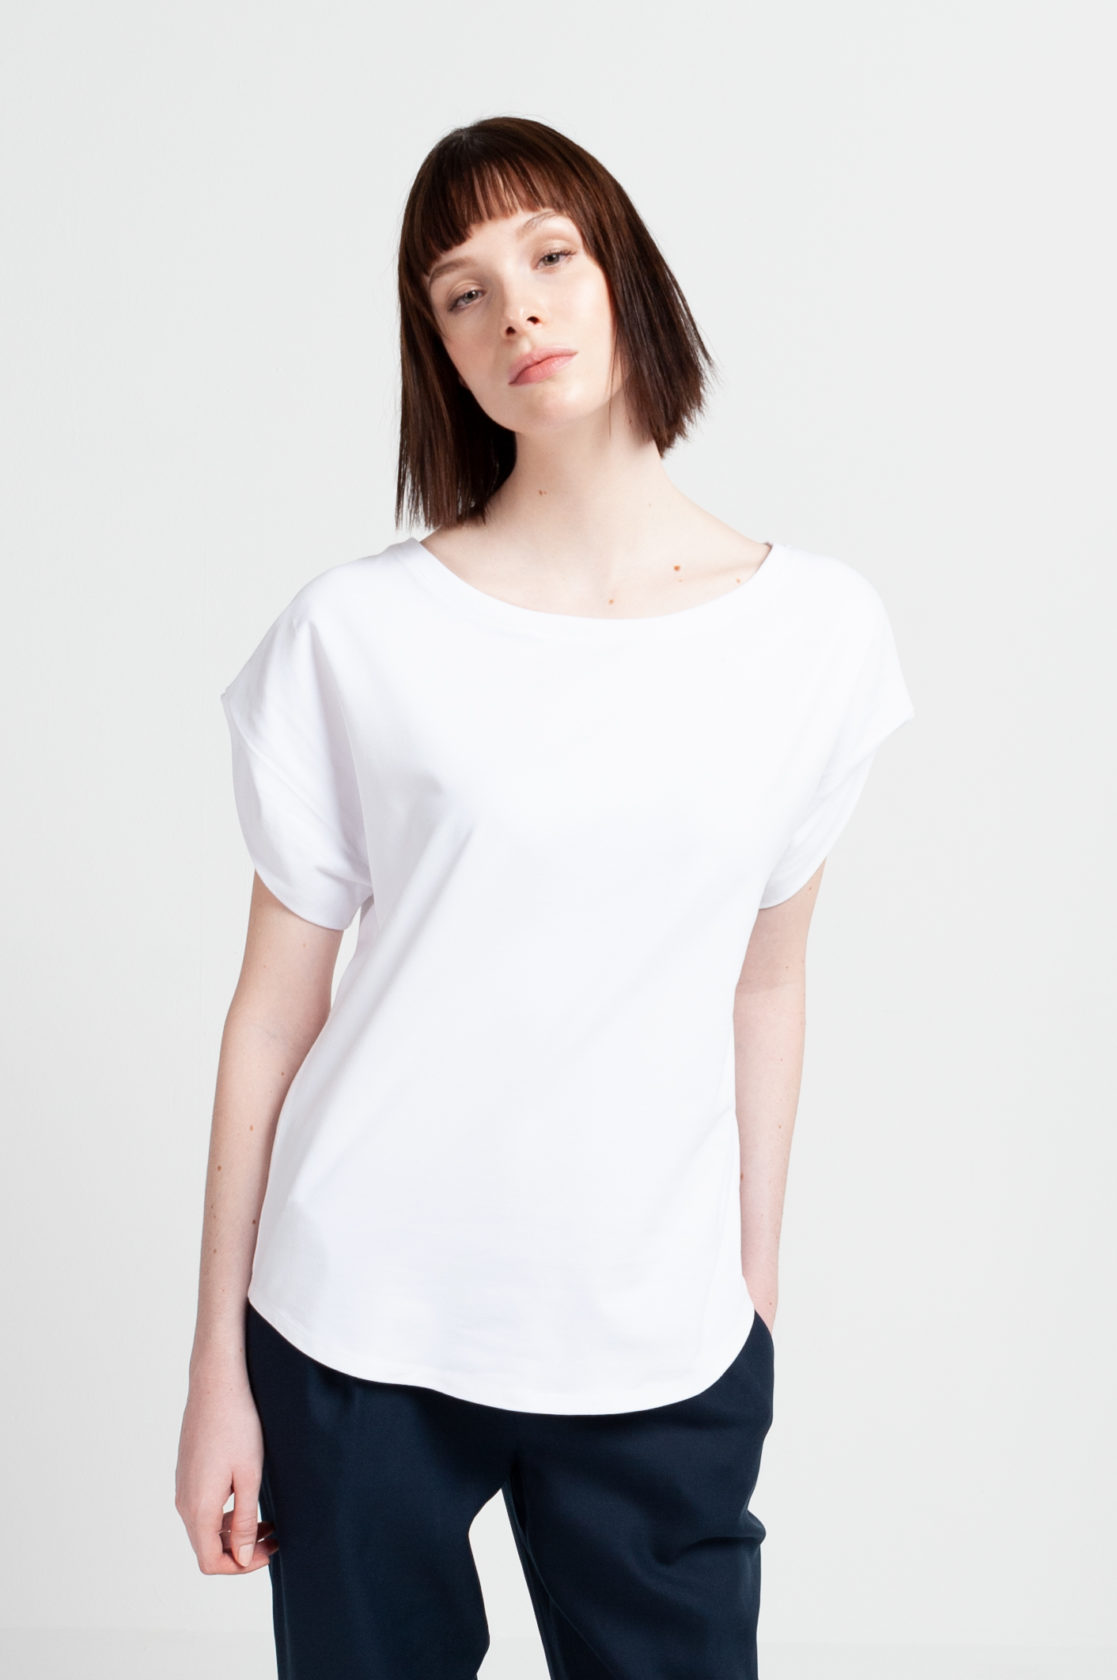 Roberta Organic Fashion Shipsheip Ellie T Shirt White (1)